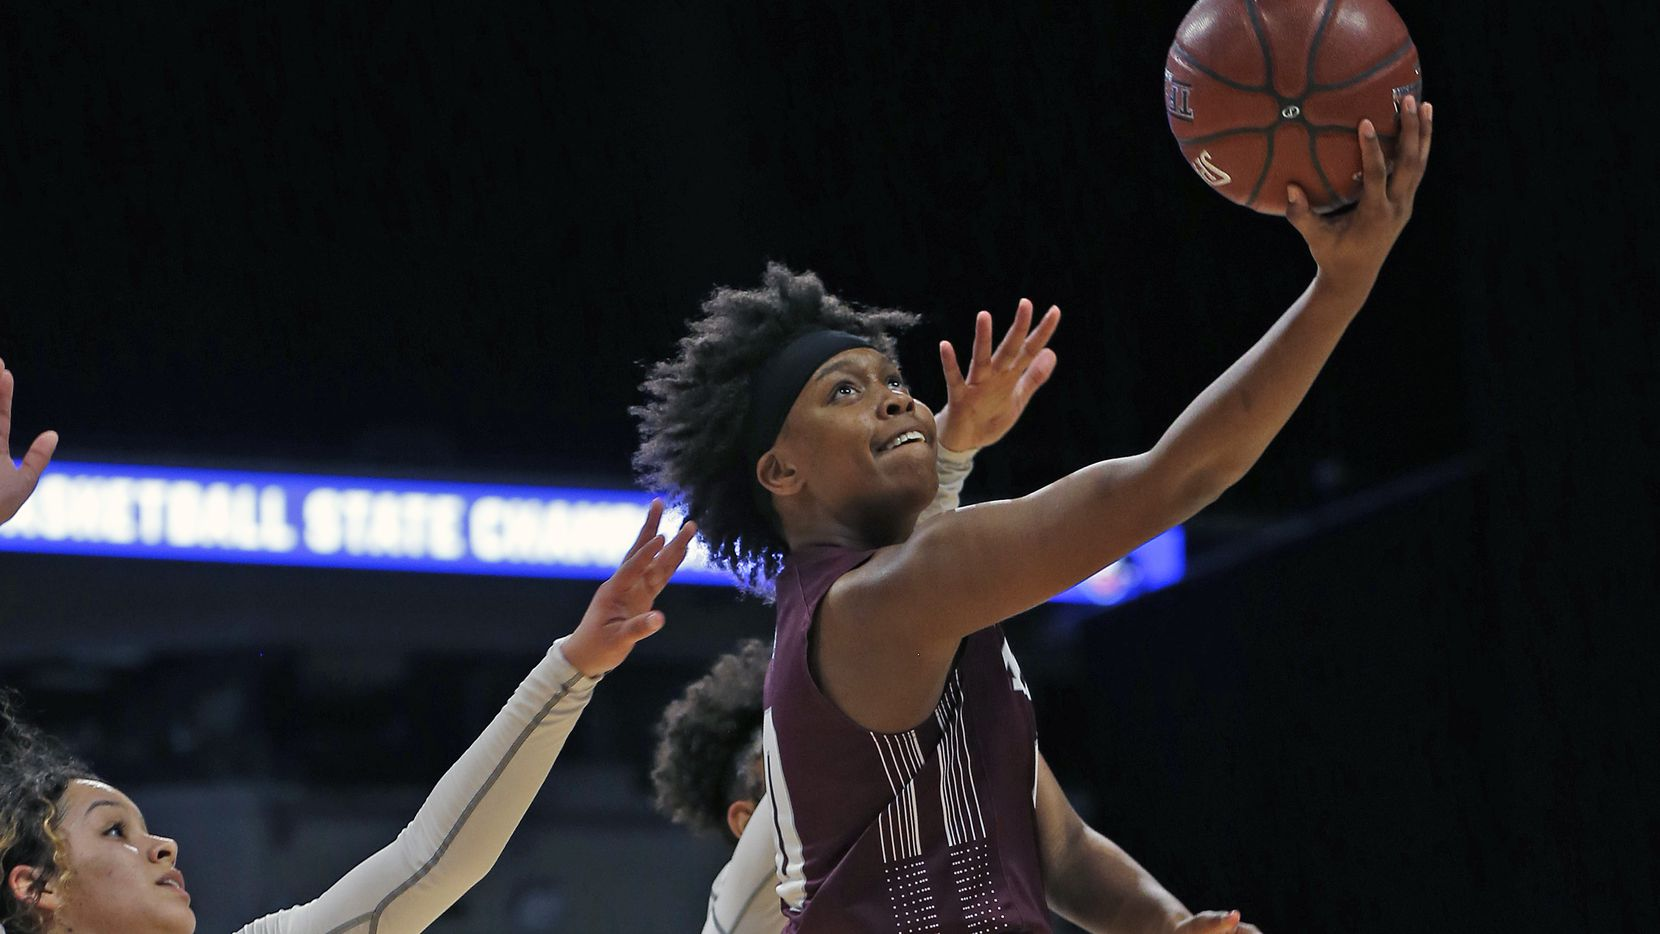 Mansfield Timberview guard Desiree Wooten tries to score on a reverse layup in a 5A semifinal match on Thursday, March 5, 2020, at the Alamodome. San Antonio Veterans defeated Mansfield Timberview 45-44.